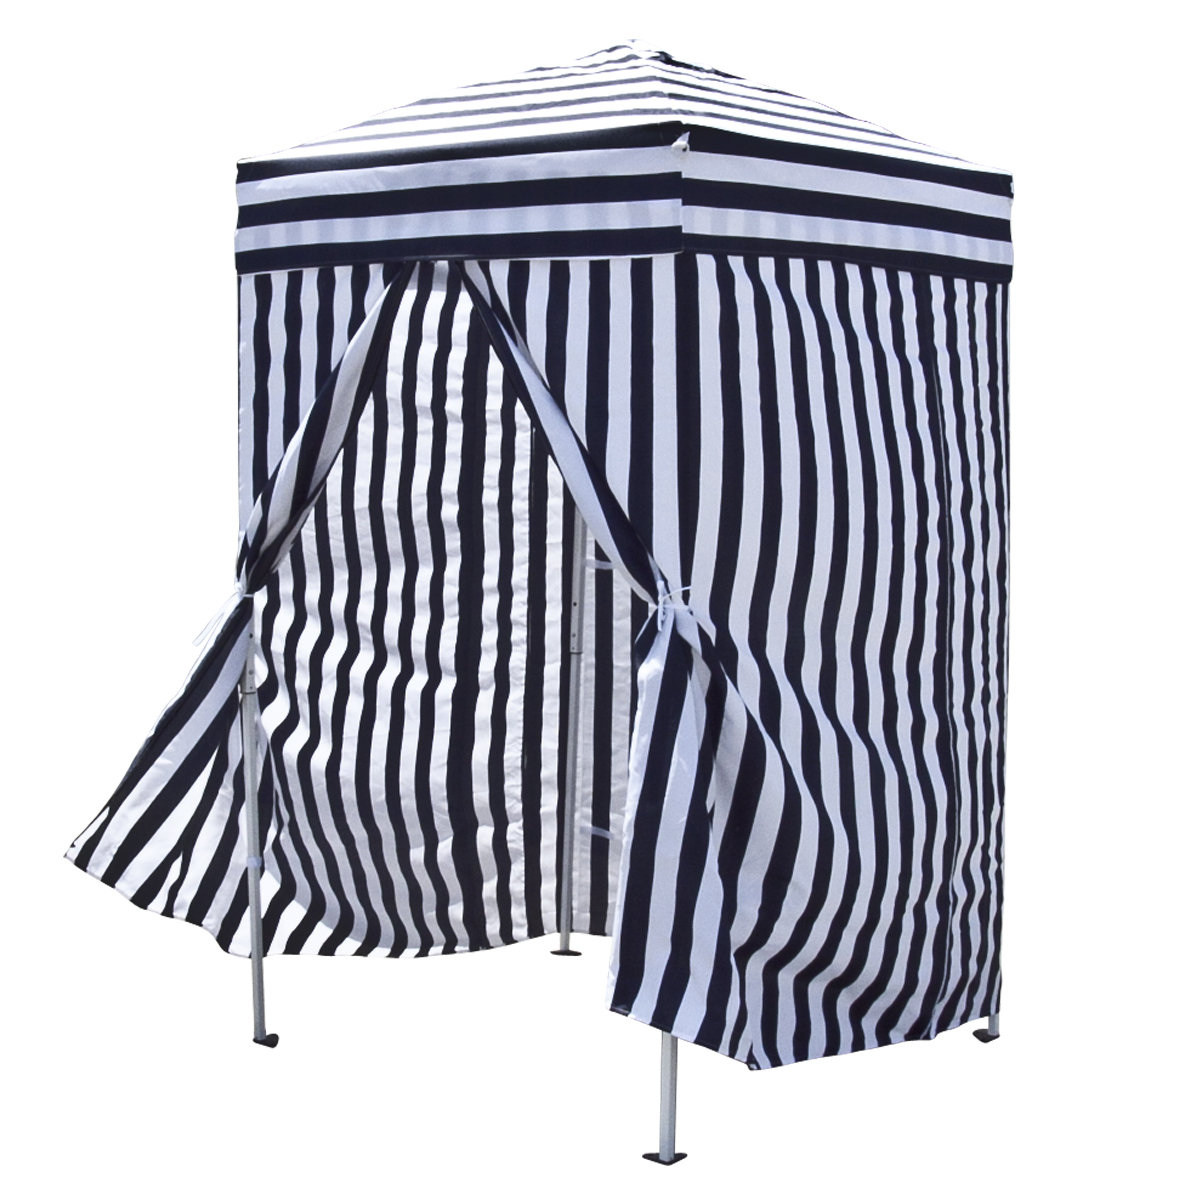 Apontus Striped Portable Changing Cabana Tent Patio Beach Pool Navy White - Walmart.com  sc 1 st  Walmart.com & Apontus Striped Portable Changing Cabana Tent Patio Beach Pool ...